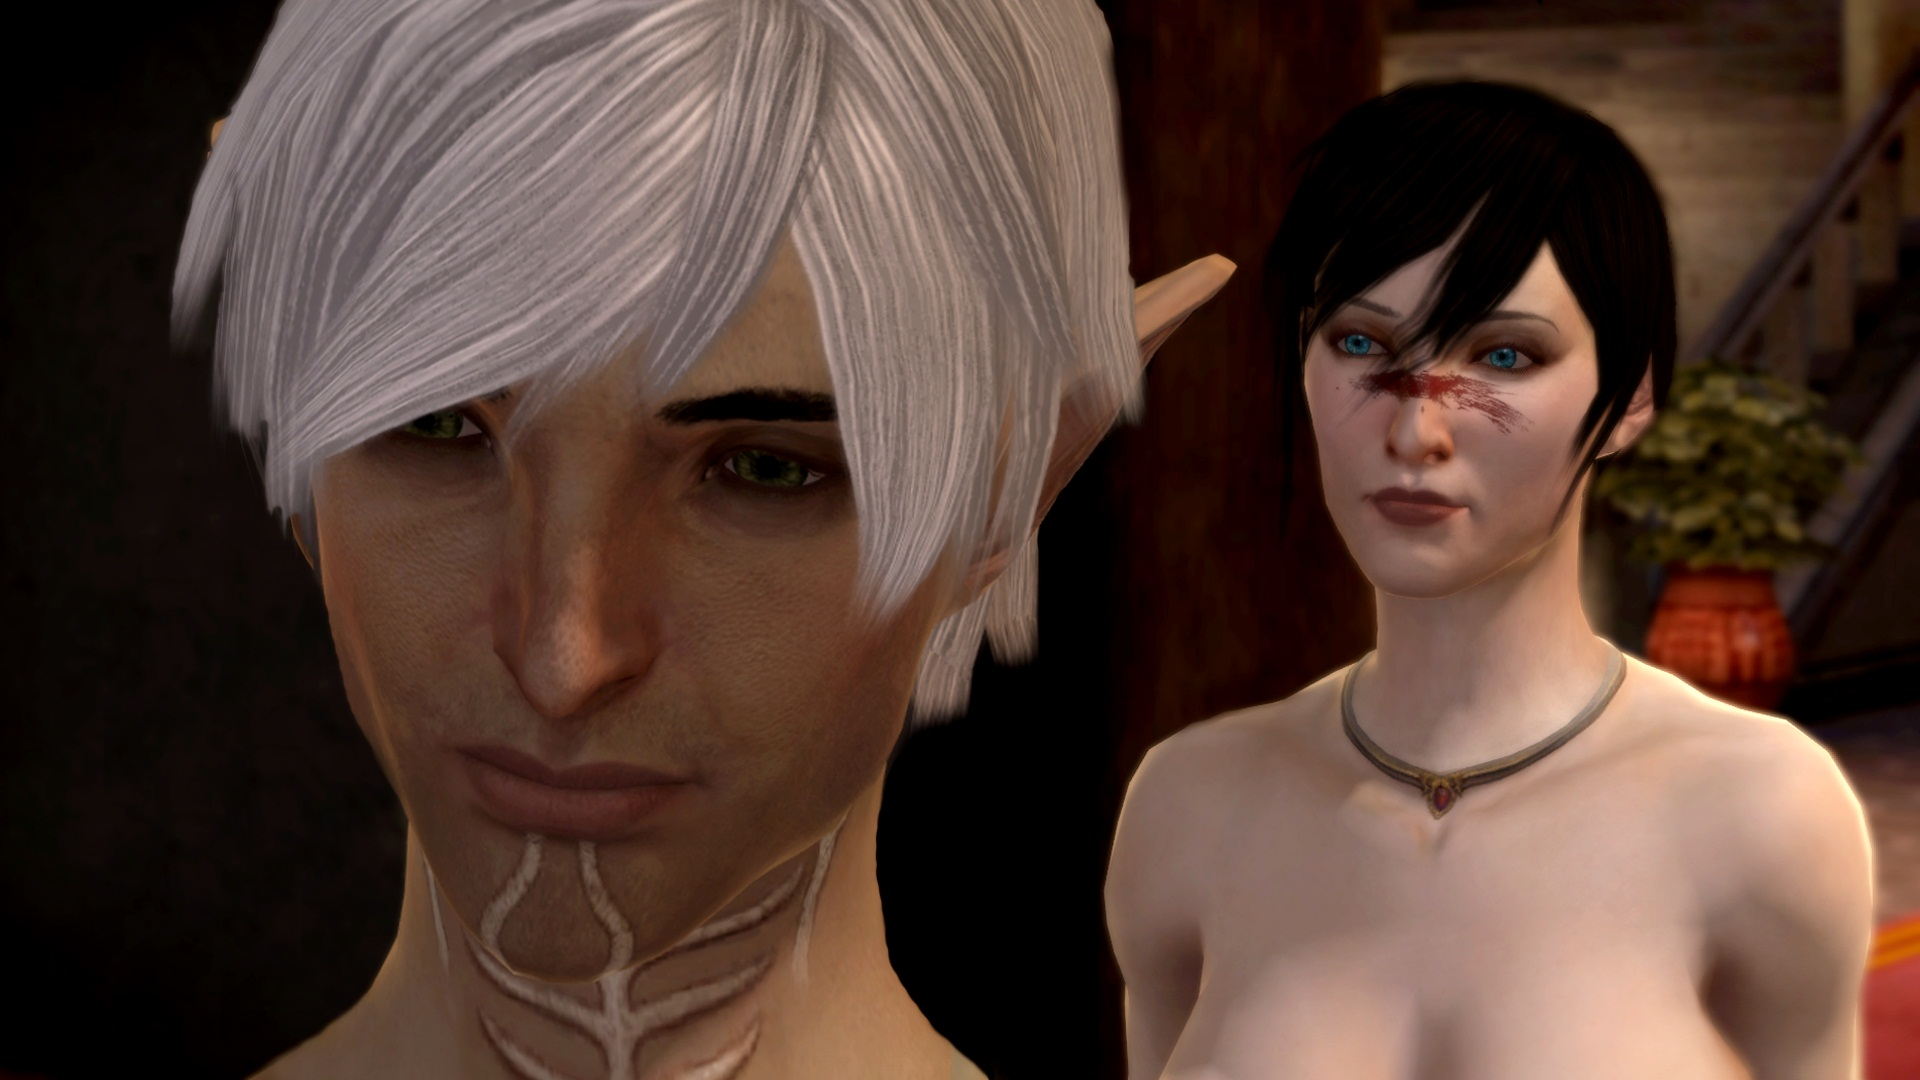 Dragonage2 nude mod anime videos